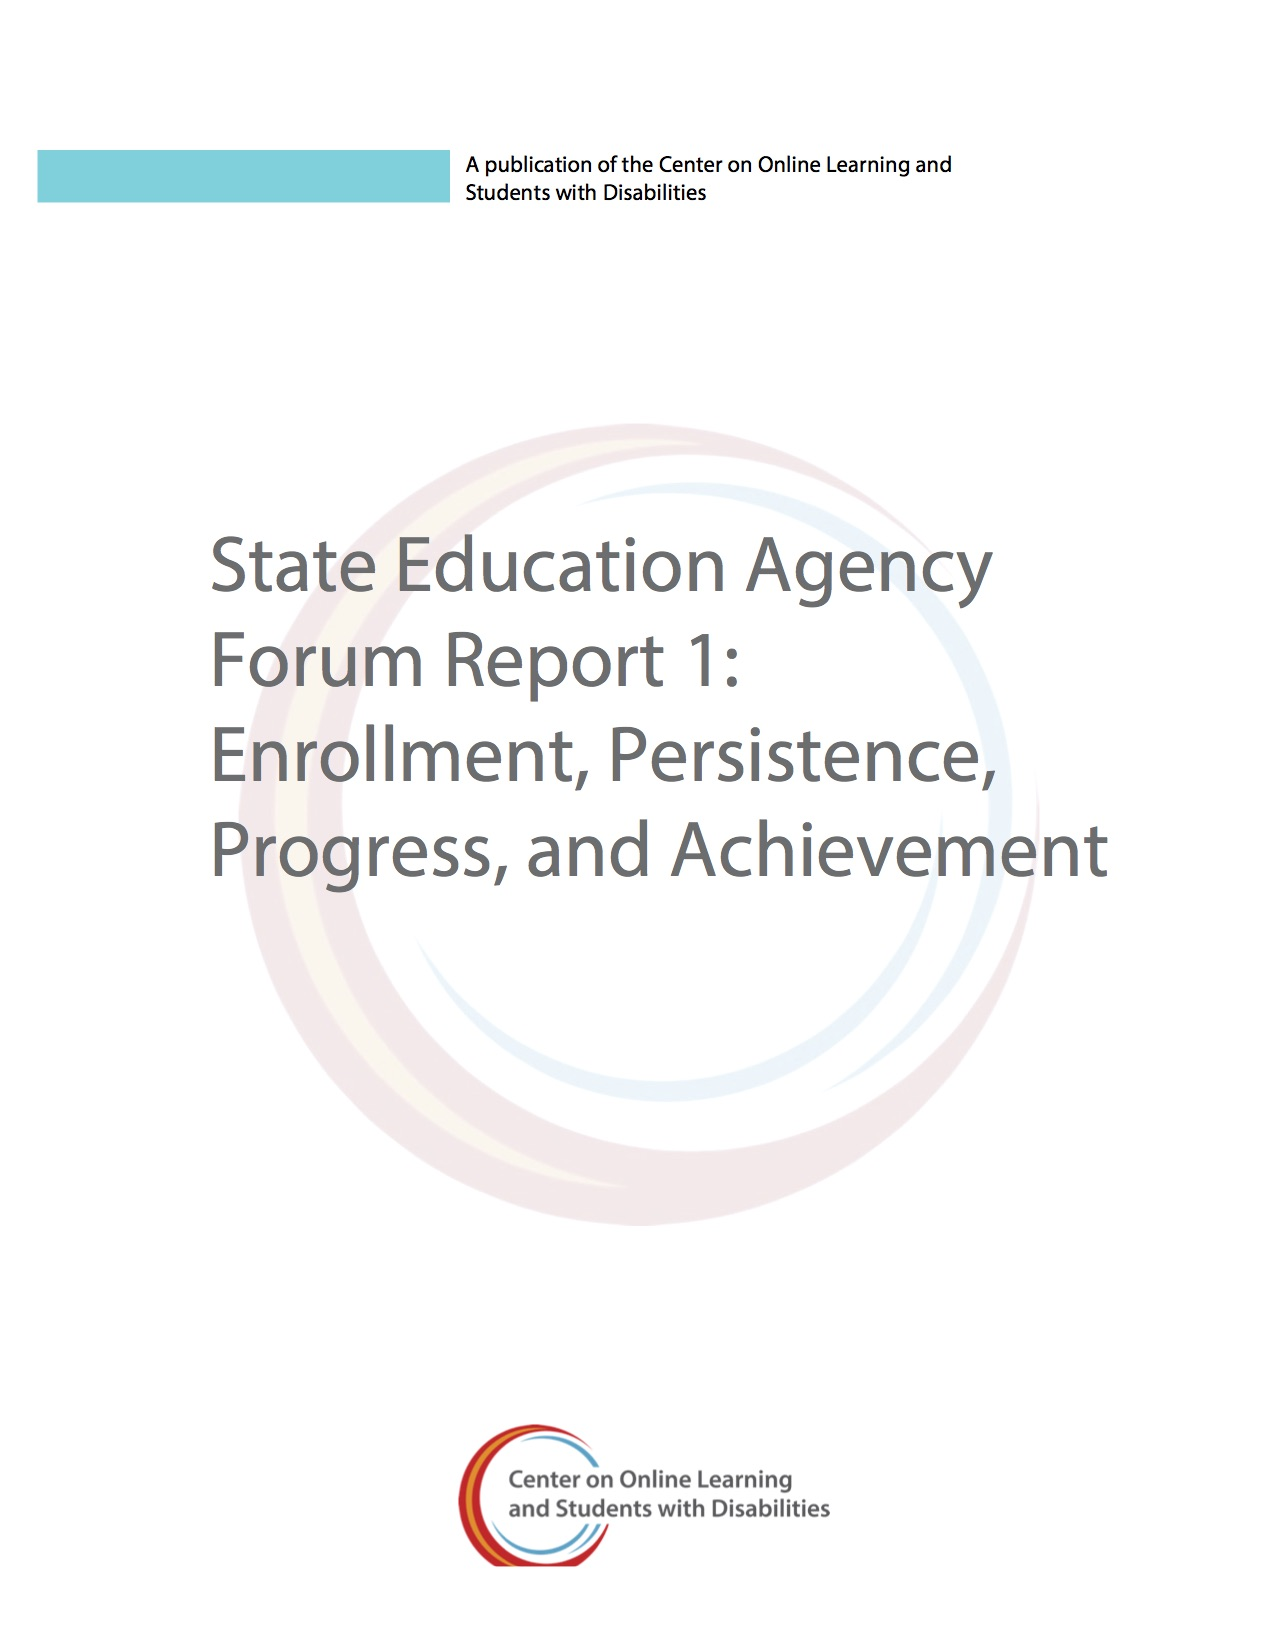 State Education Agency Forum Report 1: Enrollment, Persistence, Progress, And Achievement